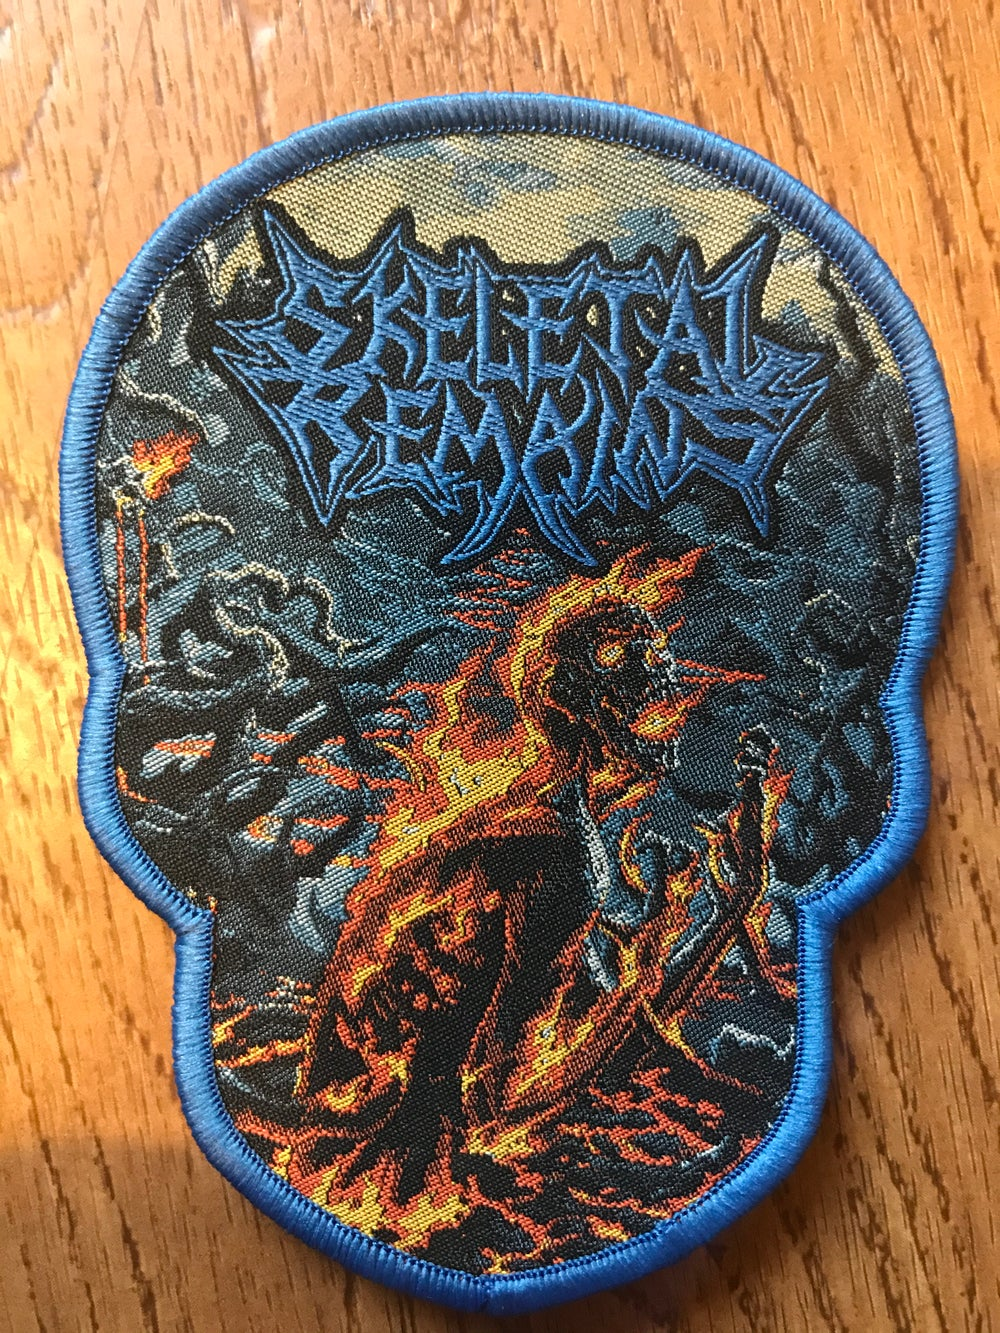 Condemned To Misery Patch